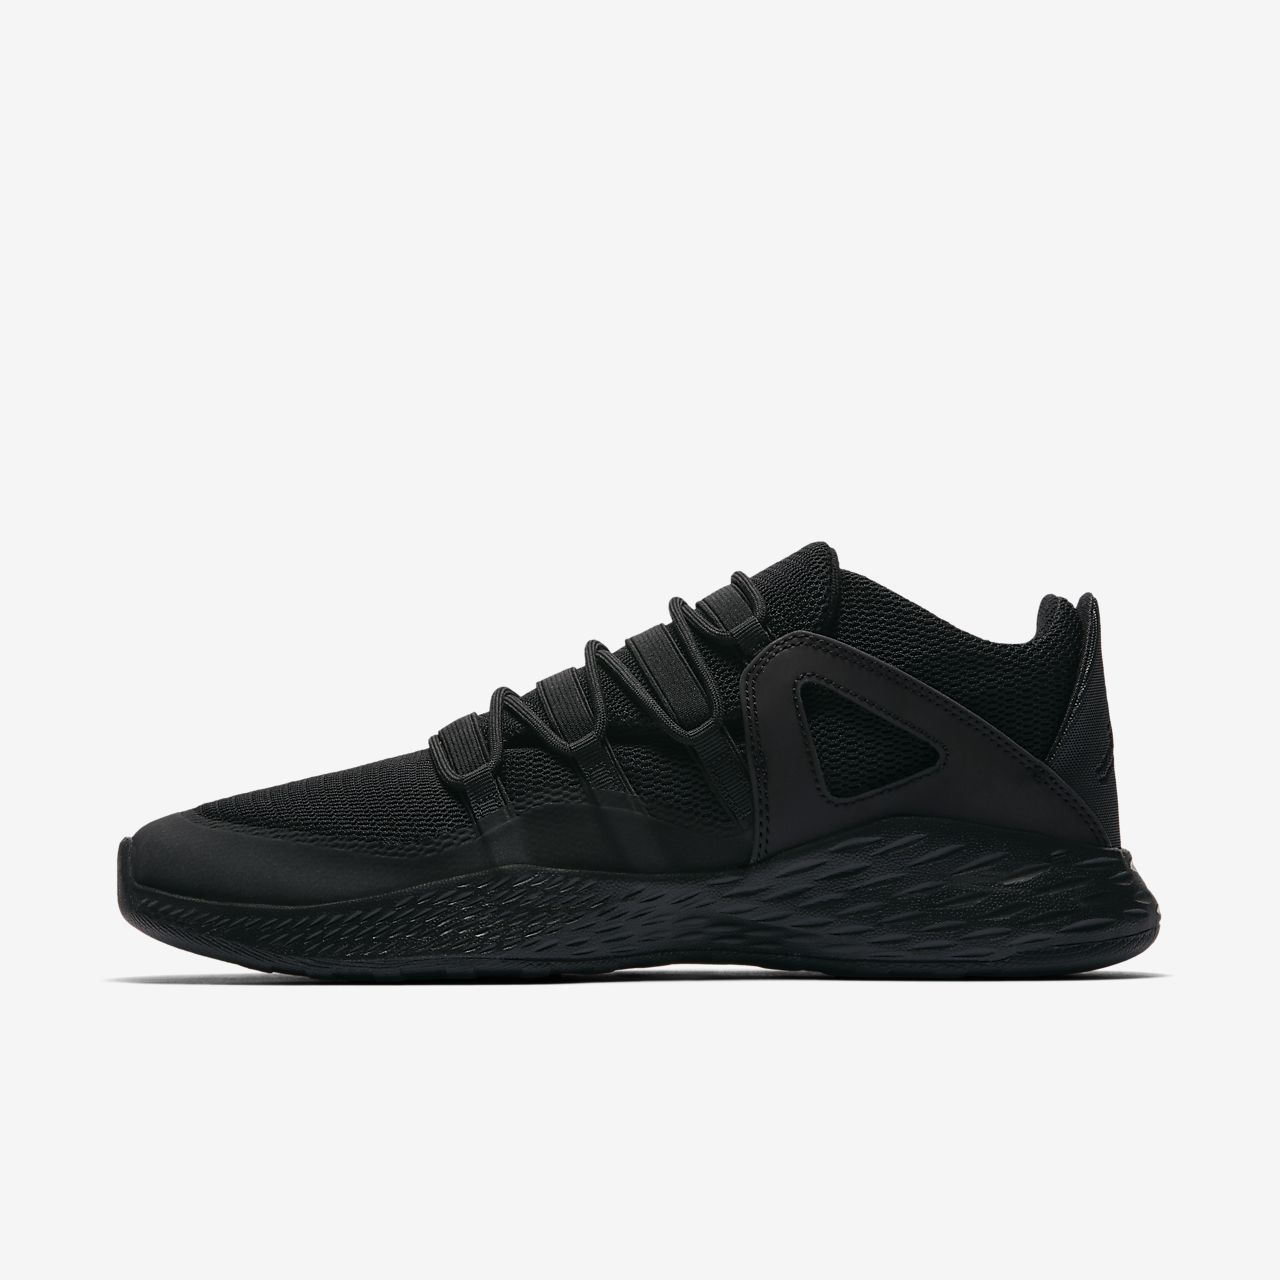 jordan eclipse black 11 nz